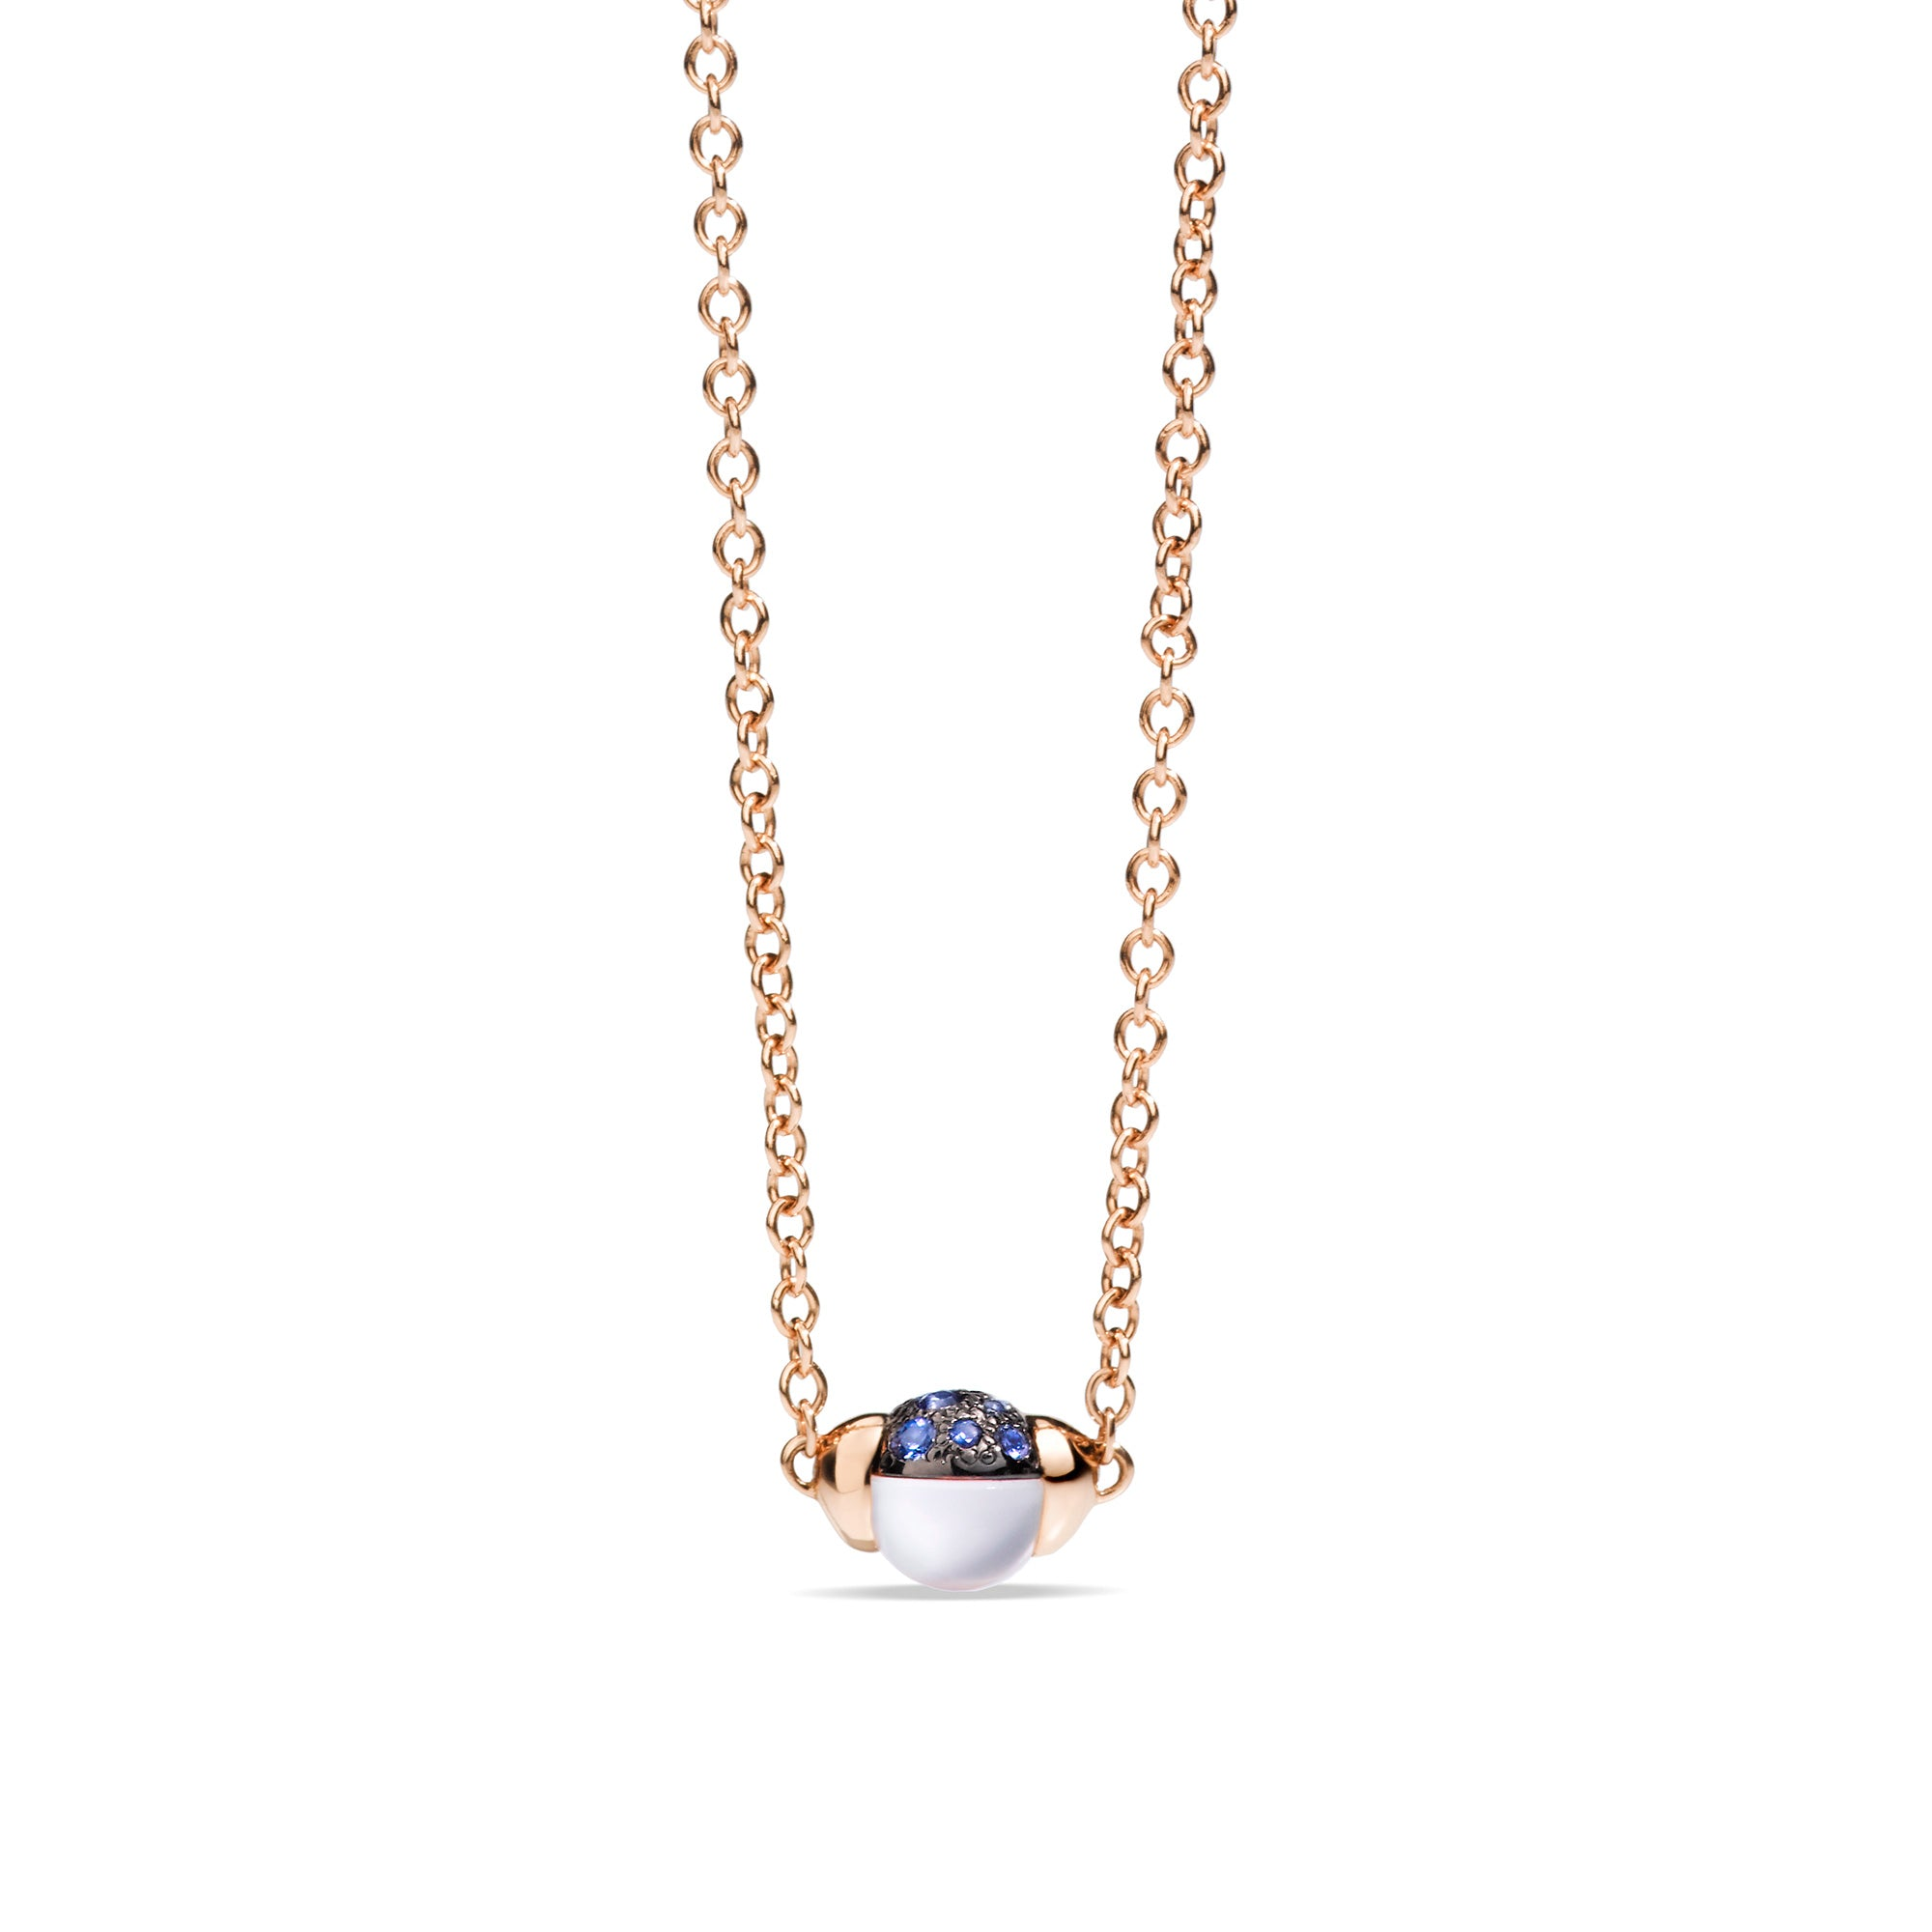 M'ama non M'ama Necklace with Pendant in 18k Rose Gold with Moonstone and Blue Sapphires - Orsini Jewellers NZ